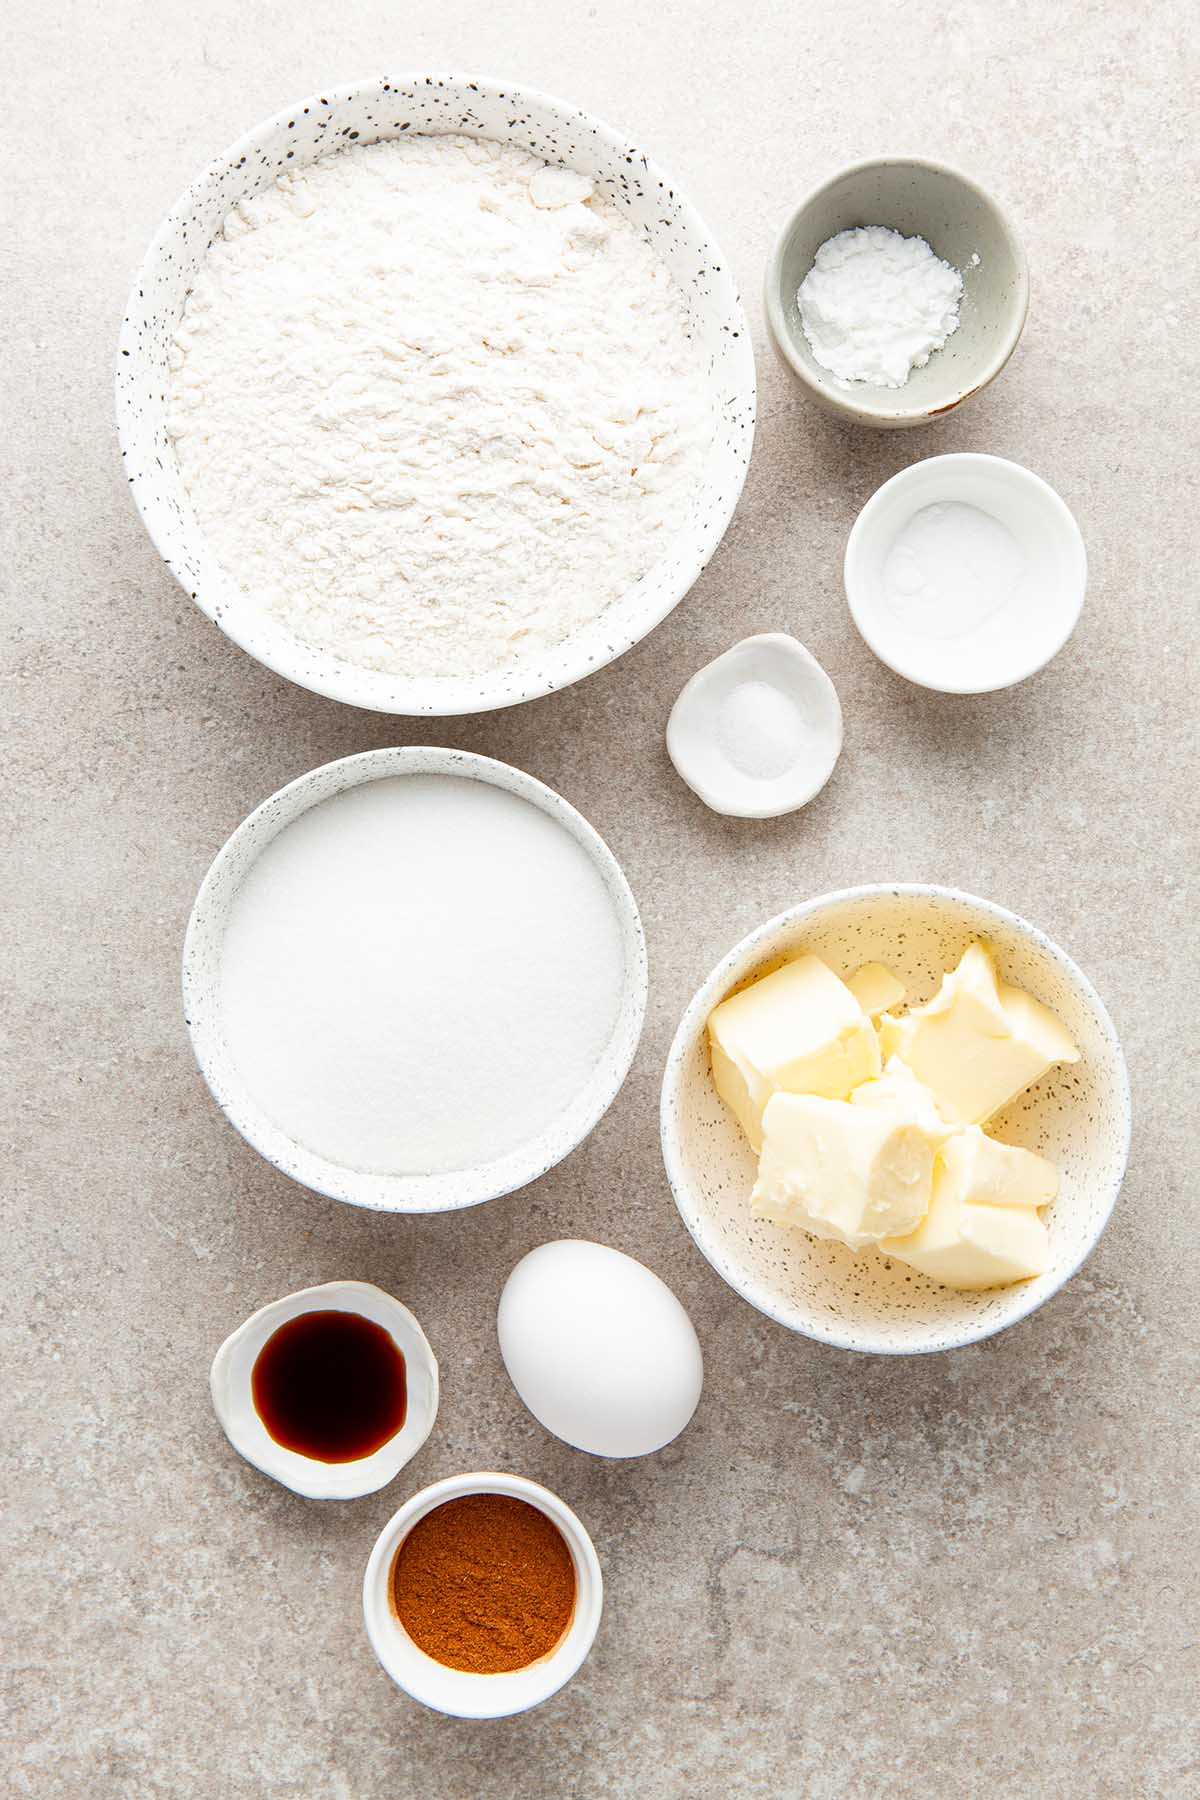 Ingredients to make snickerdoodles without cream of tartar laid out on a stone surface.